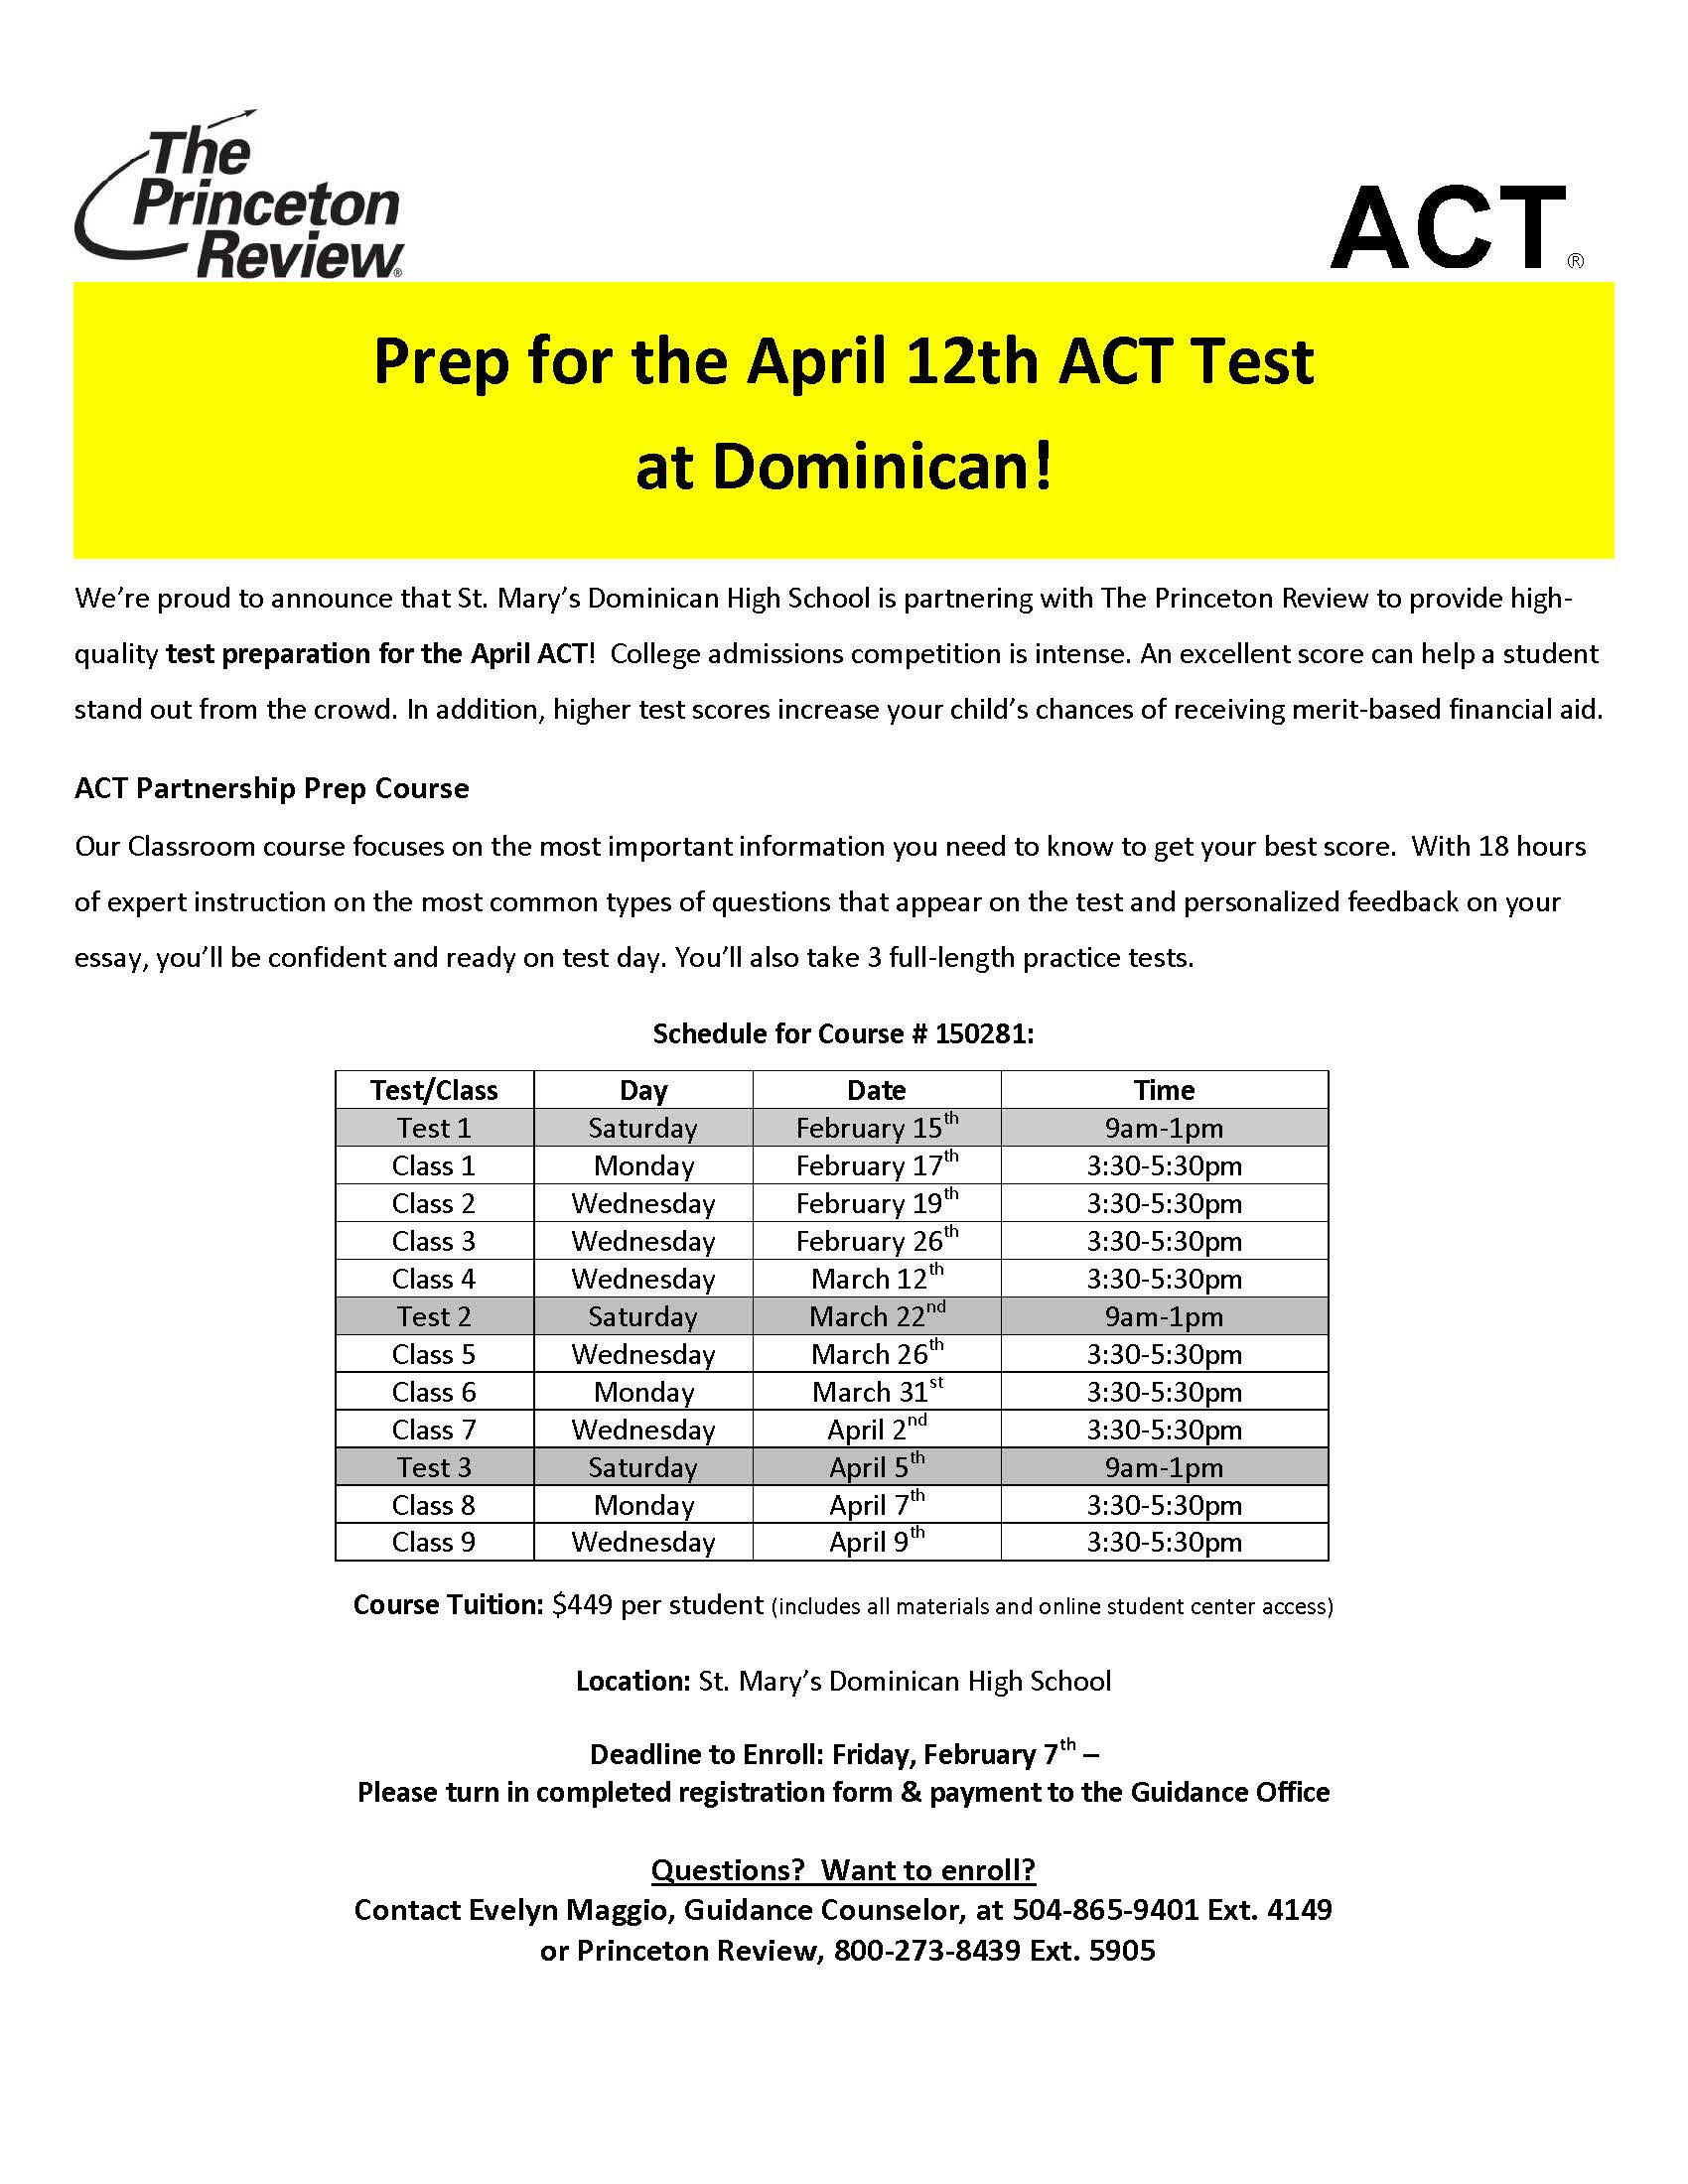 ACT Course Information - St. Mary's Dominican High School